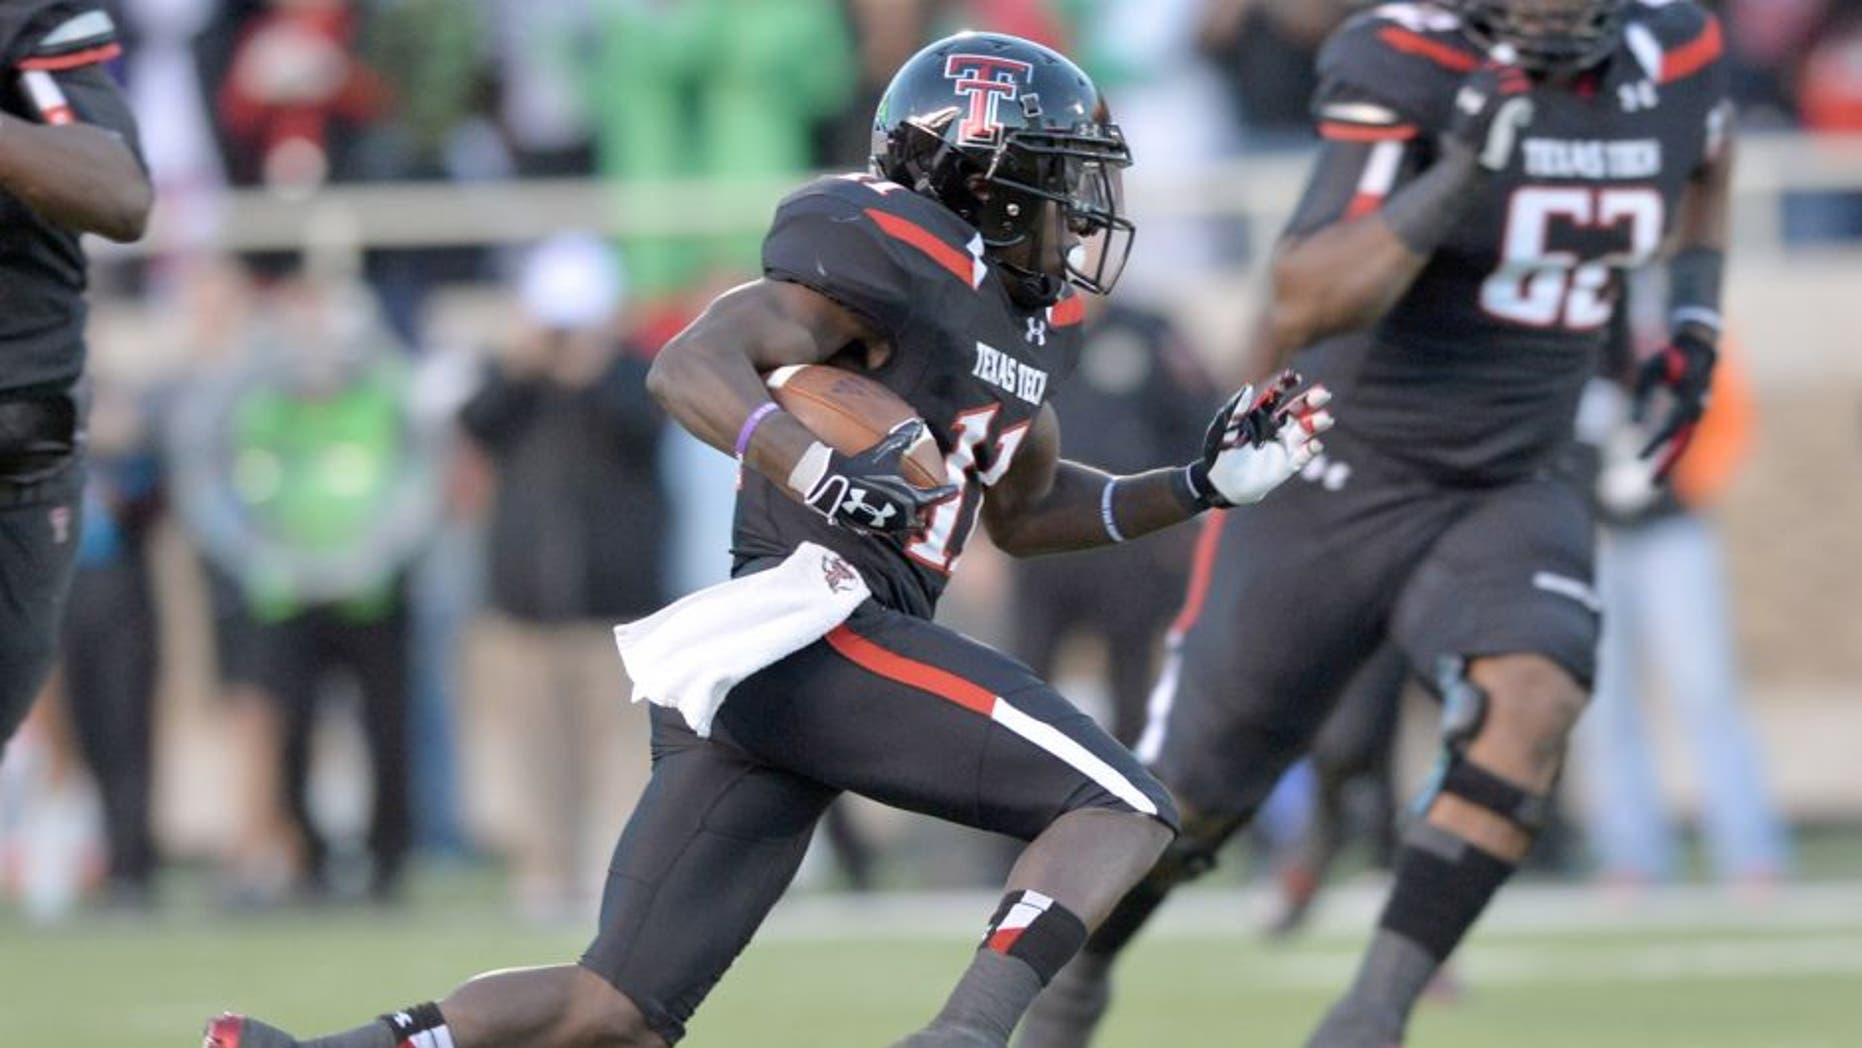 LUBBOCK, TX - NOVEMBER 2: Jakeem Grant #11 of the Texas Tech Red Raiders rushes the ball during game action against the Oklahoma State Cowboys on November 2, 2013 at AT&T Jones Stadium in Lubbock, Texas. Oklahoma State won the game 52-34 (Photo by John Weast/Getty Images)